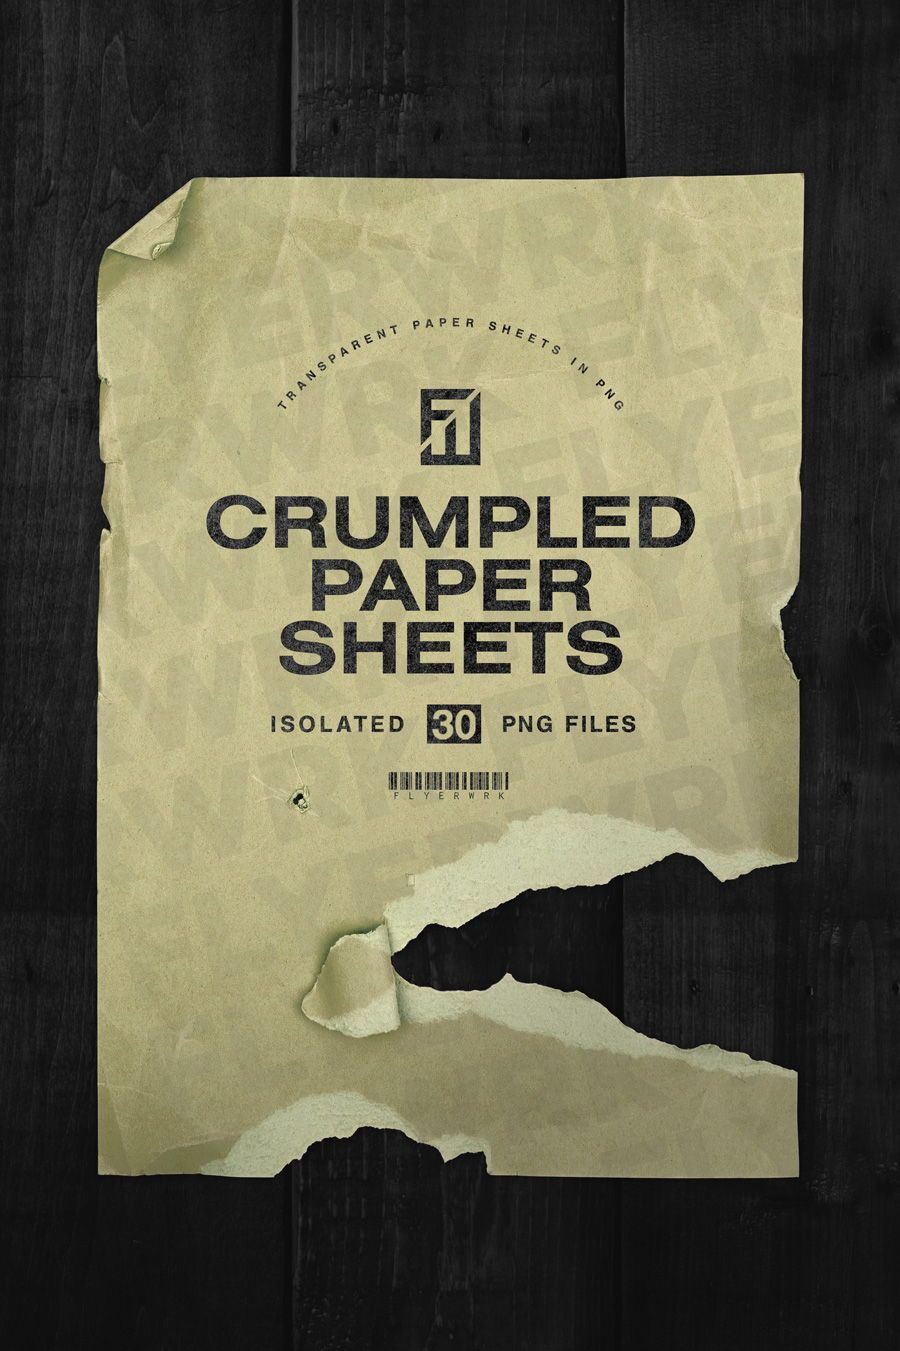 Crumpled Paper Sheets In Png Are You Looking For A Stylish And Authentic Looking Texture Set Then T Crumpled Paper Graphic Design Resources Cover Art Design